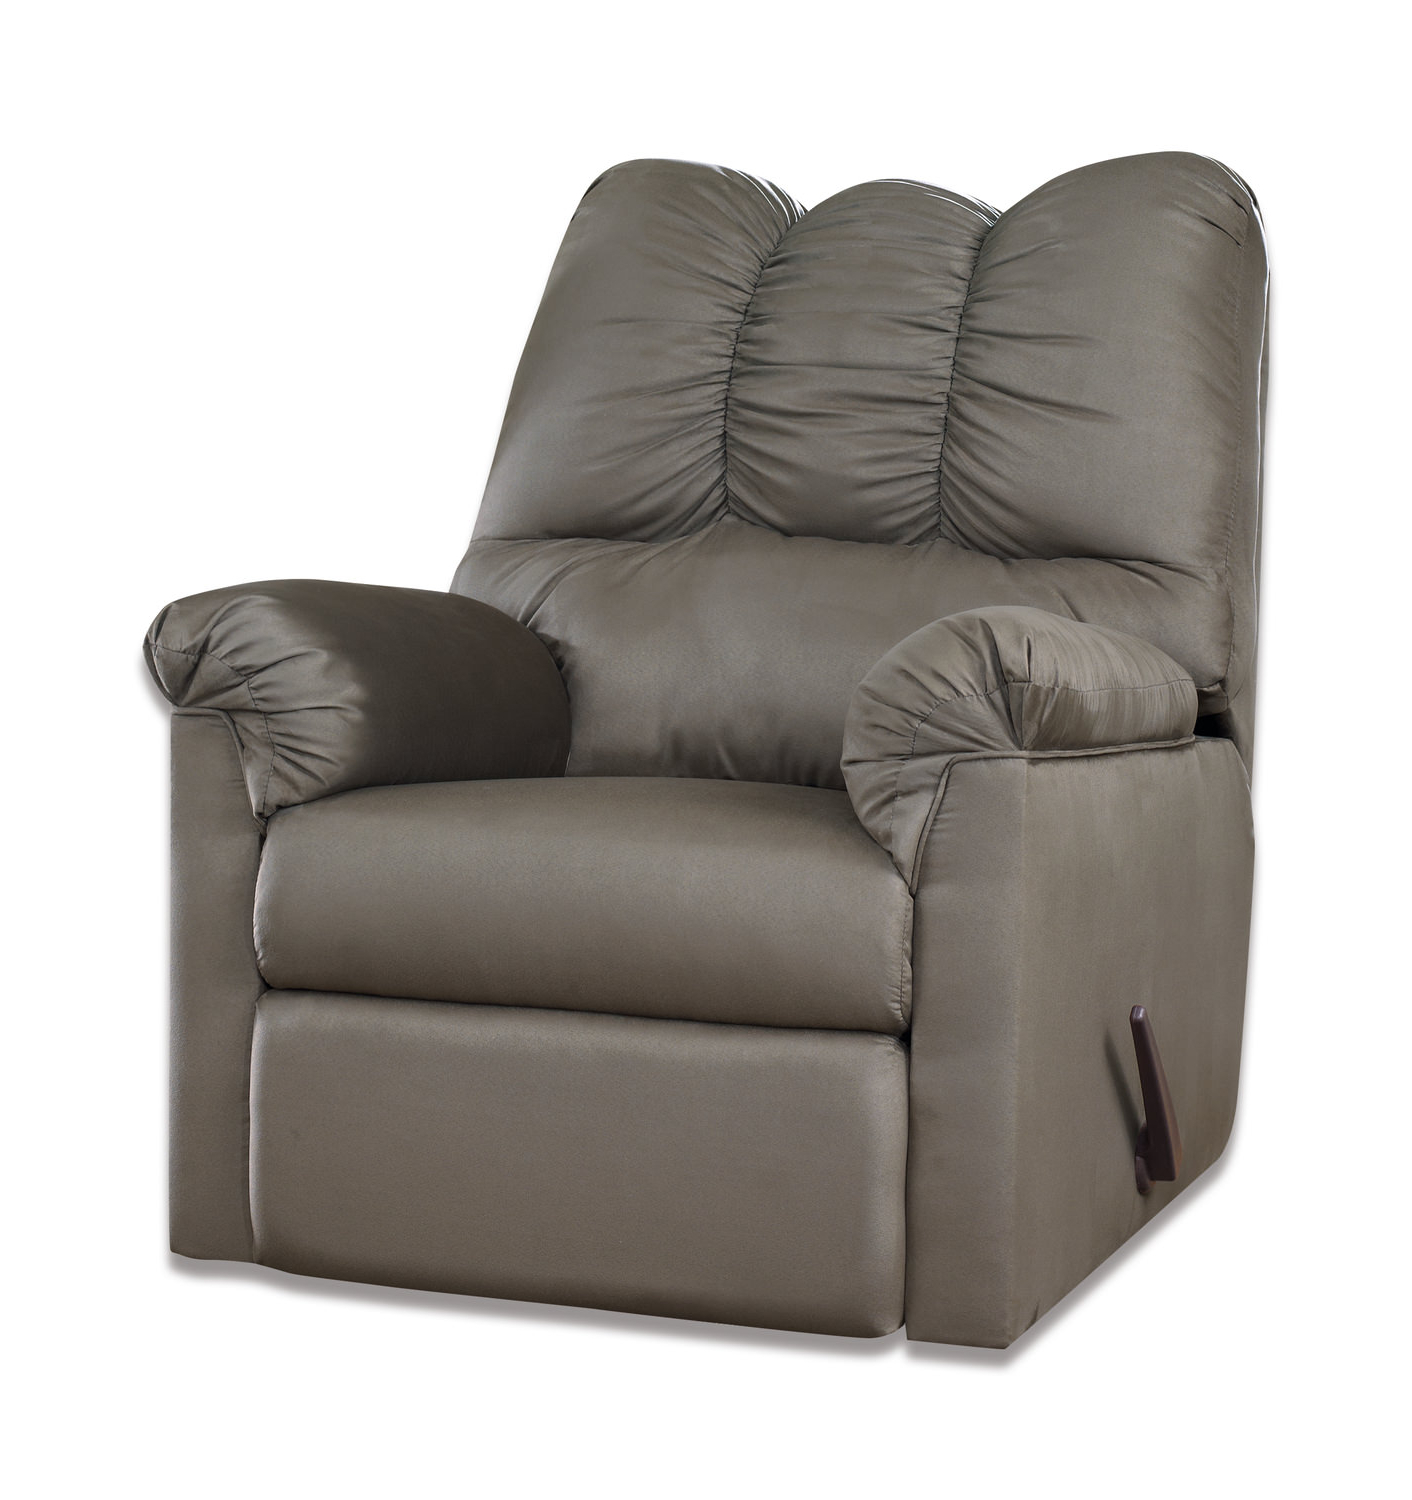 Well Liked Recliners – Leather, Rocker & Swivel – Hom Furniture In Chocolate Brown Leather Tufted Swivel Chairs (View 11 of 20)